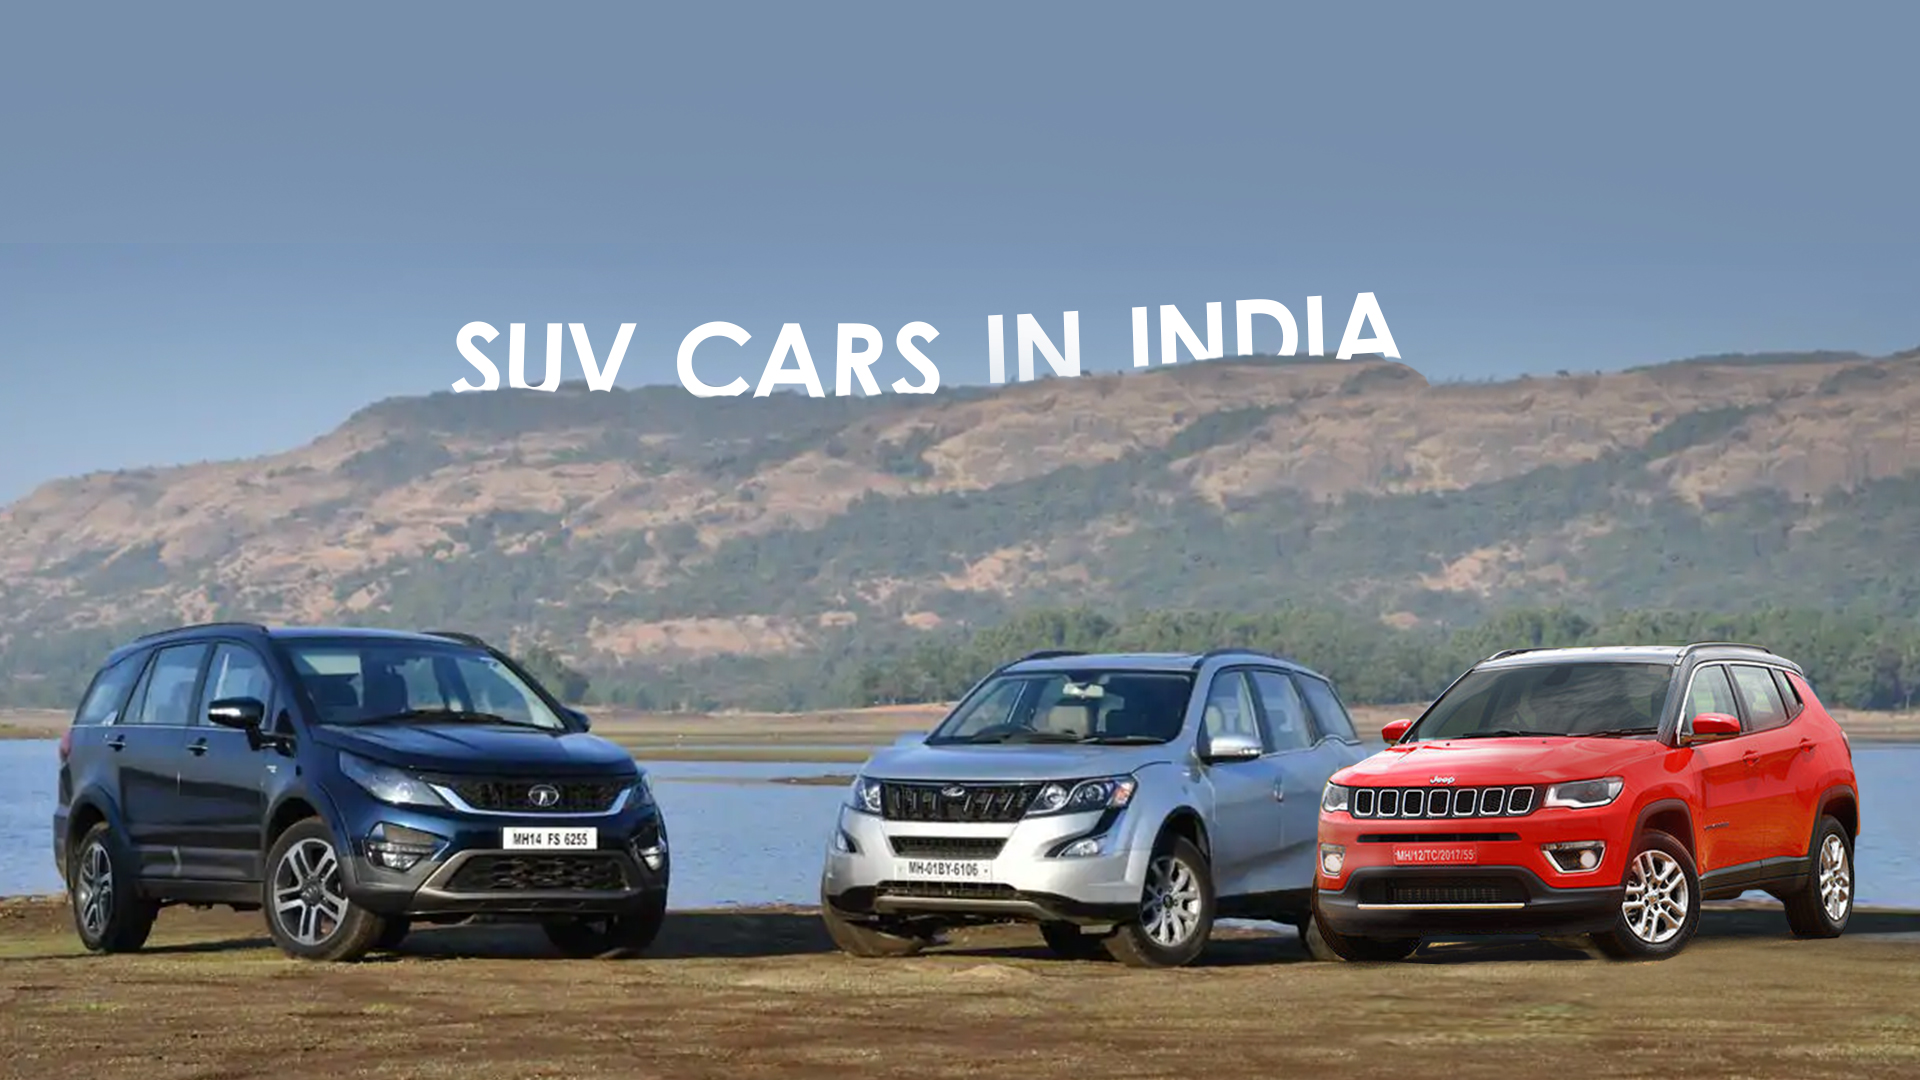 SUV Cars In India: List of Best SUV/MUV Cars You Must Buy Today